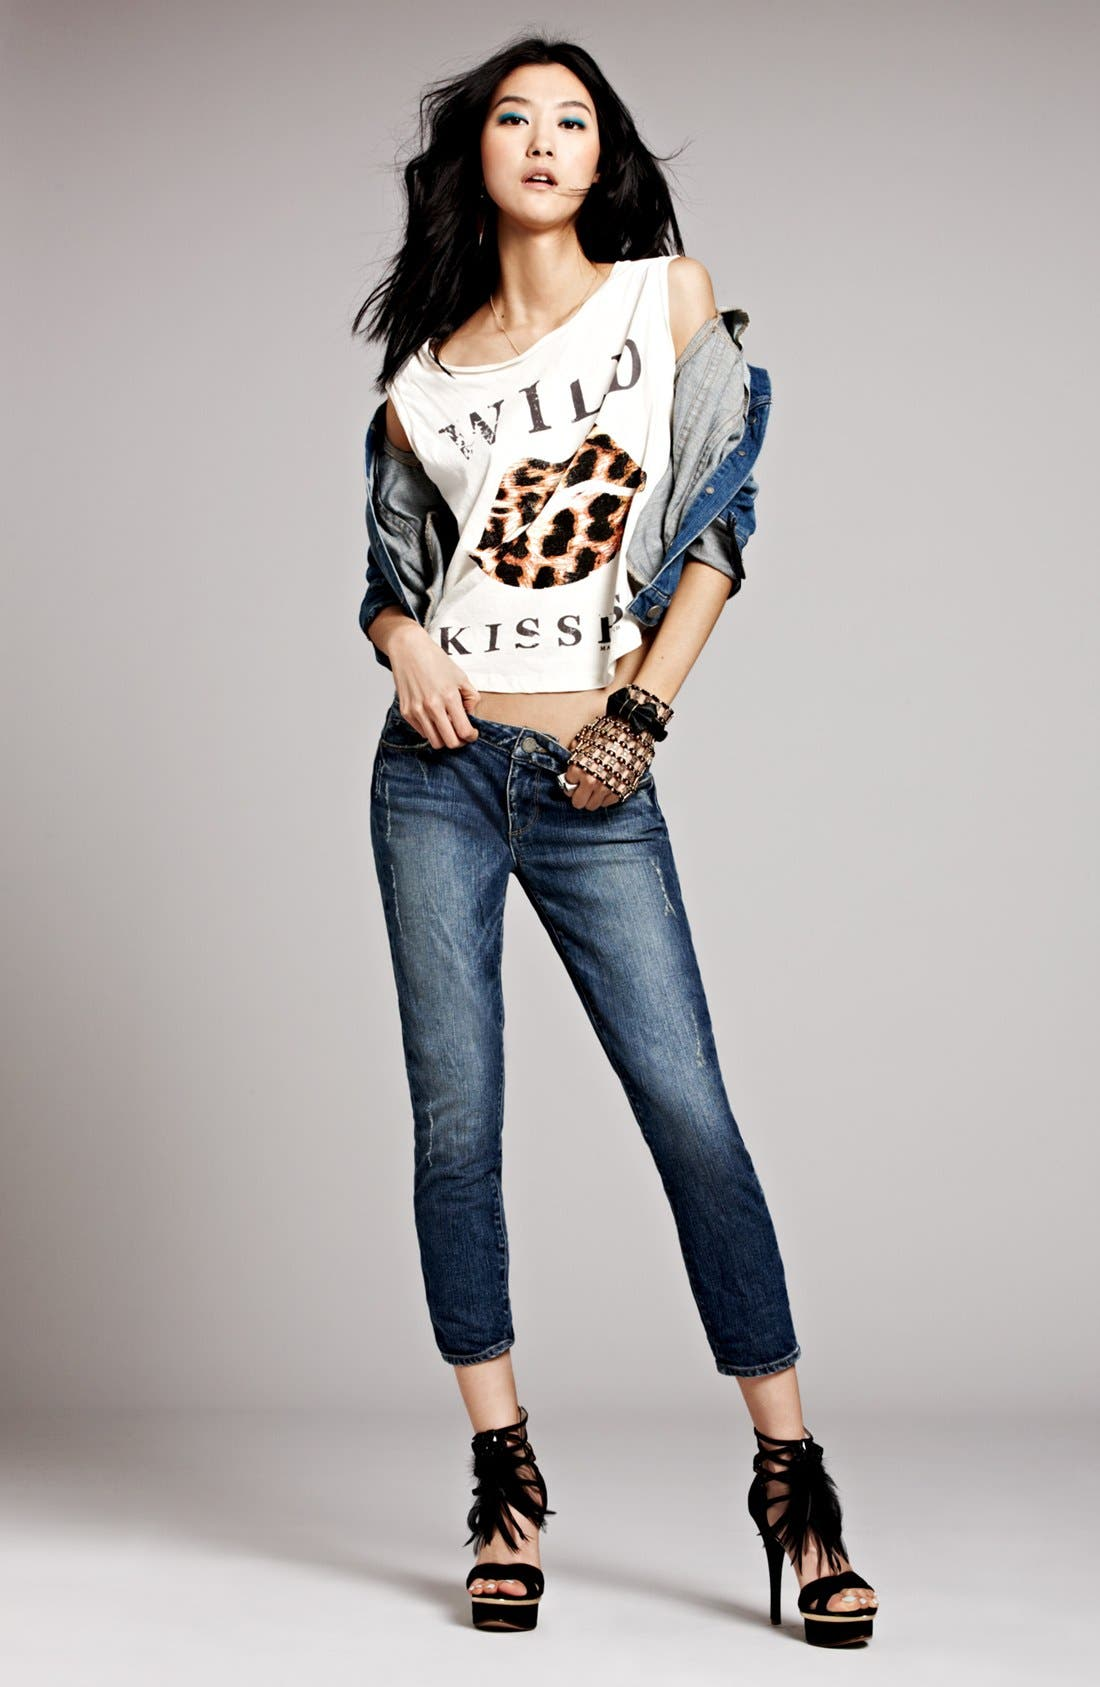 Main Image - Maison Scotch Tank, Paige Jeans & Jacket